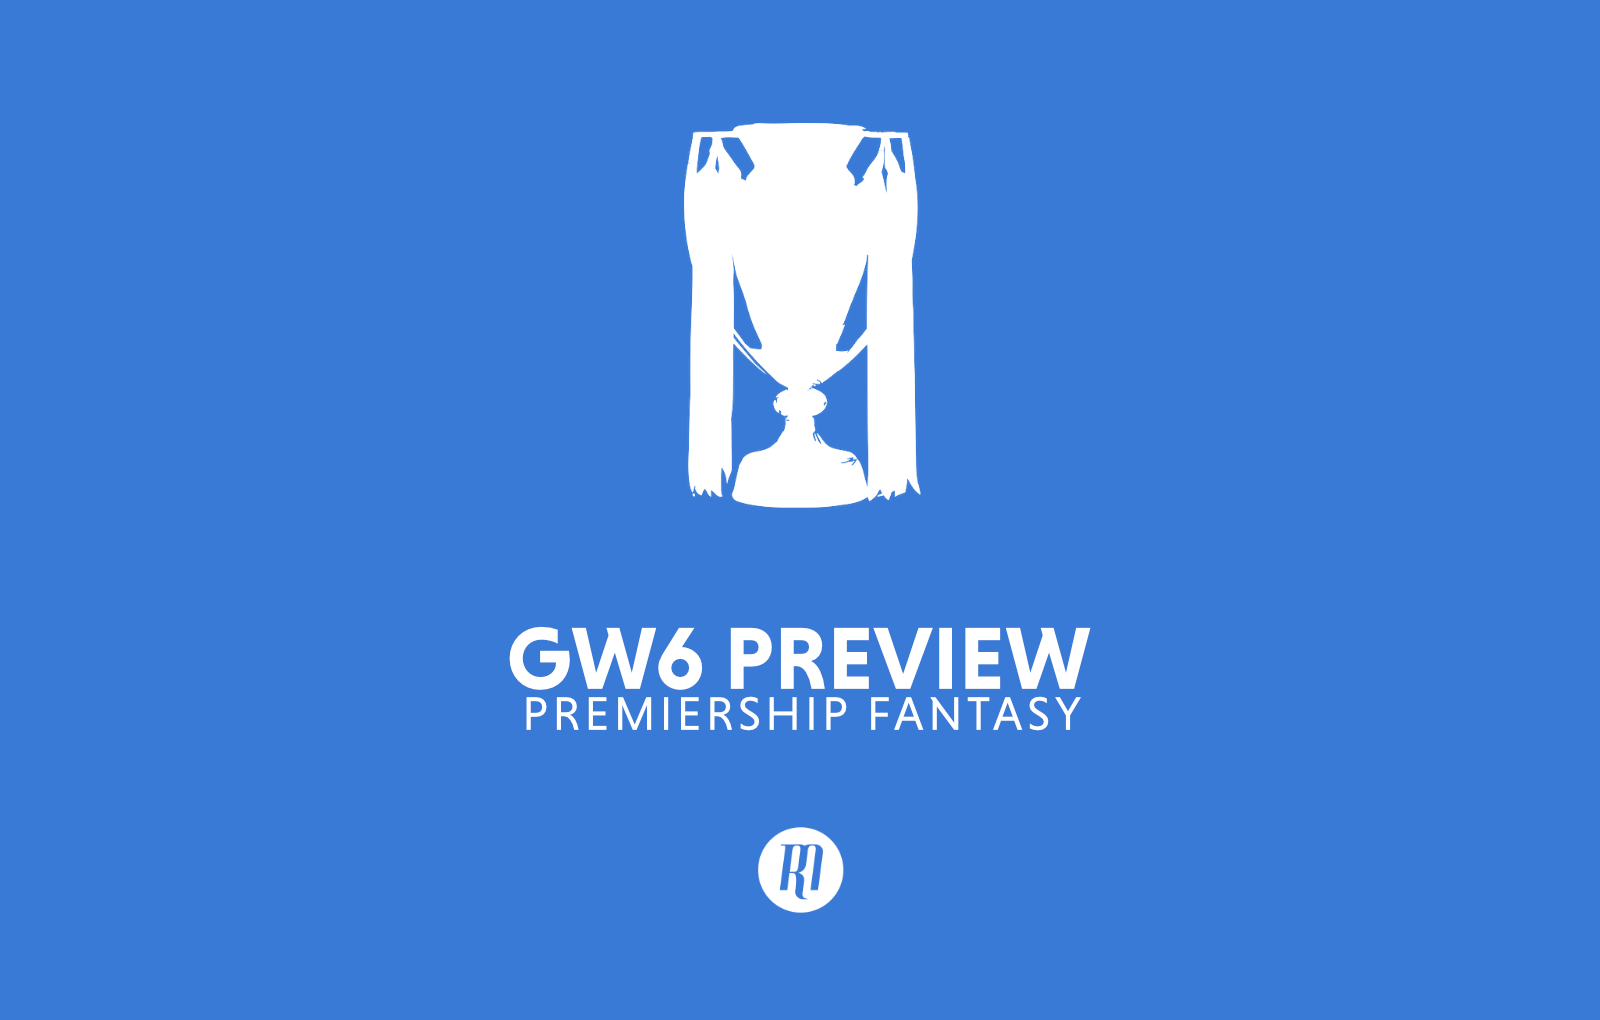 Fantasy Rugby: Premiership Gameweek 6 Preview